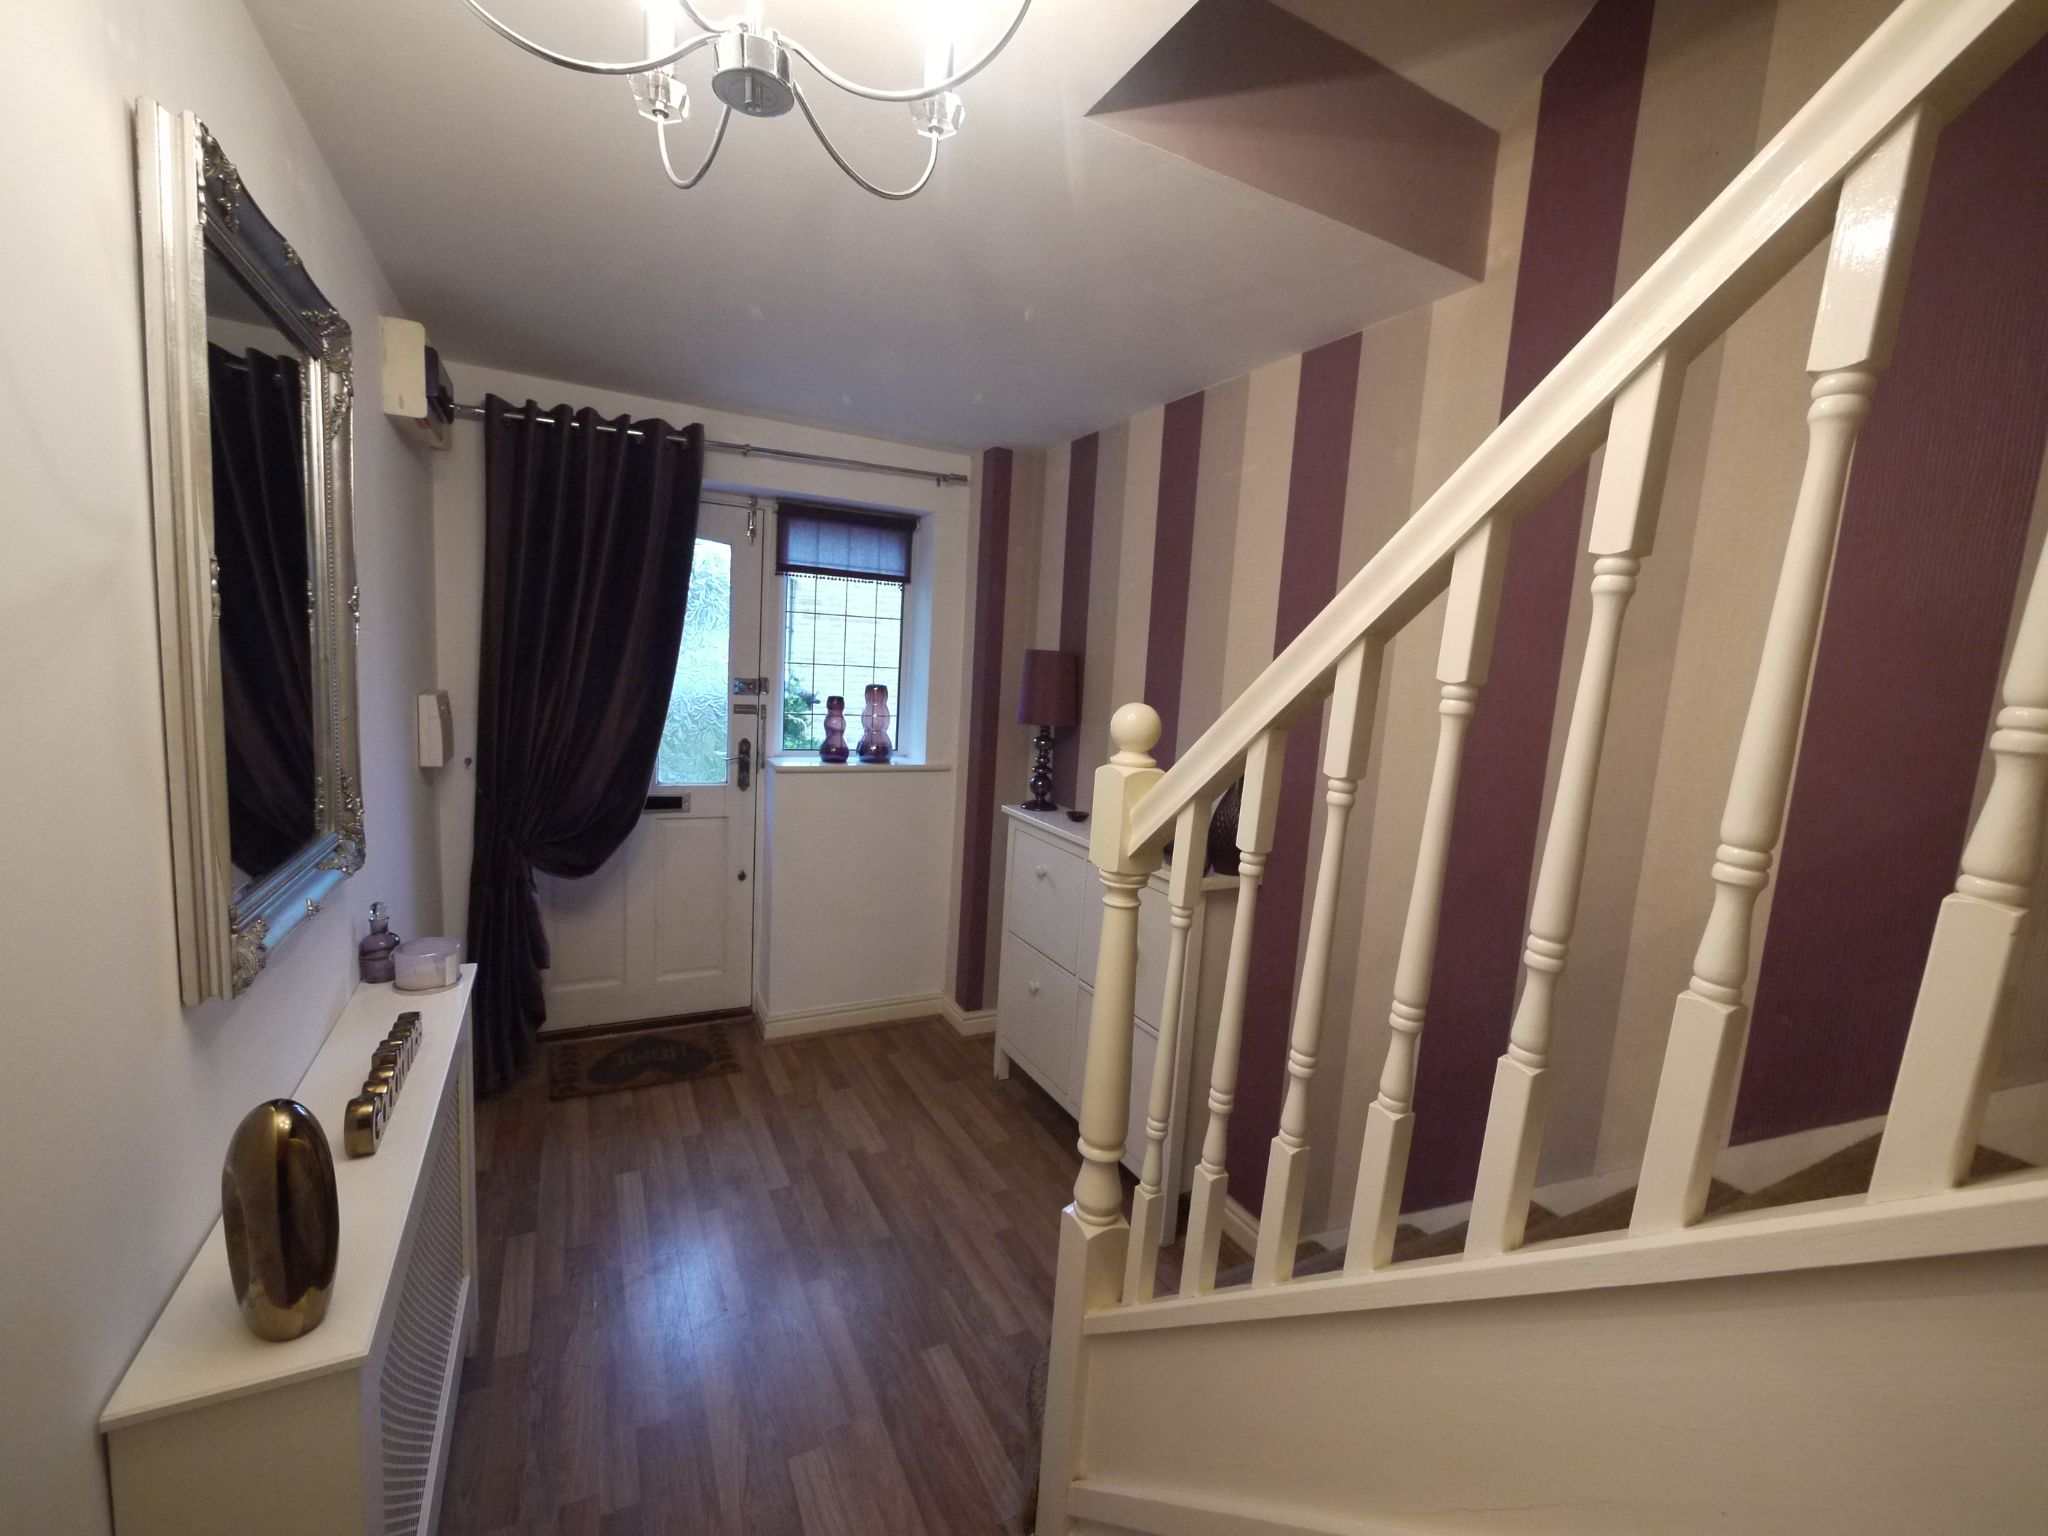 4 bedroom town house For Sale in Brighouse - Entrance Hall.